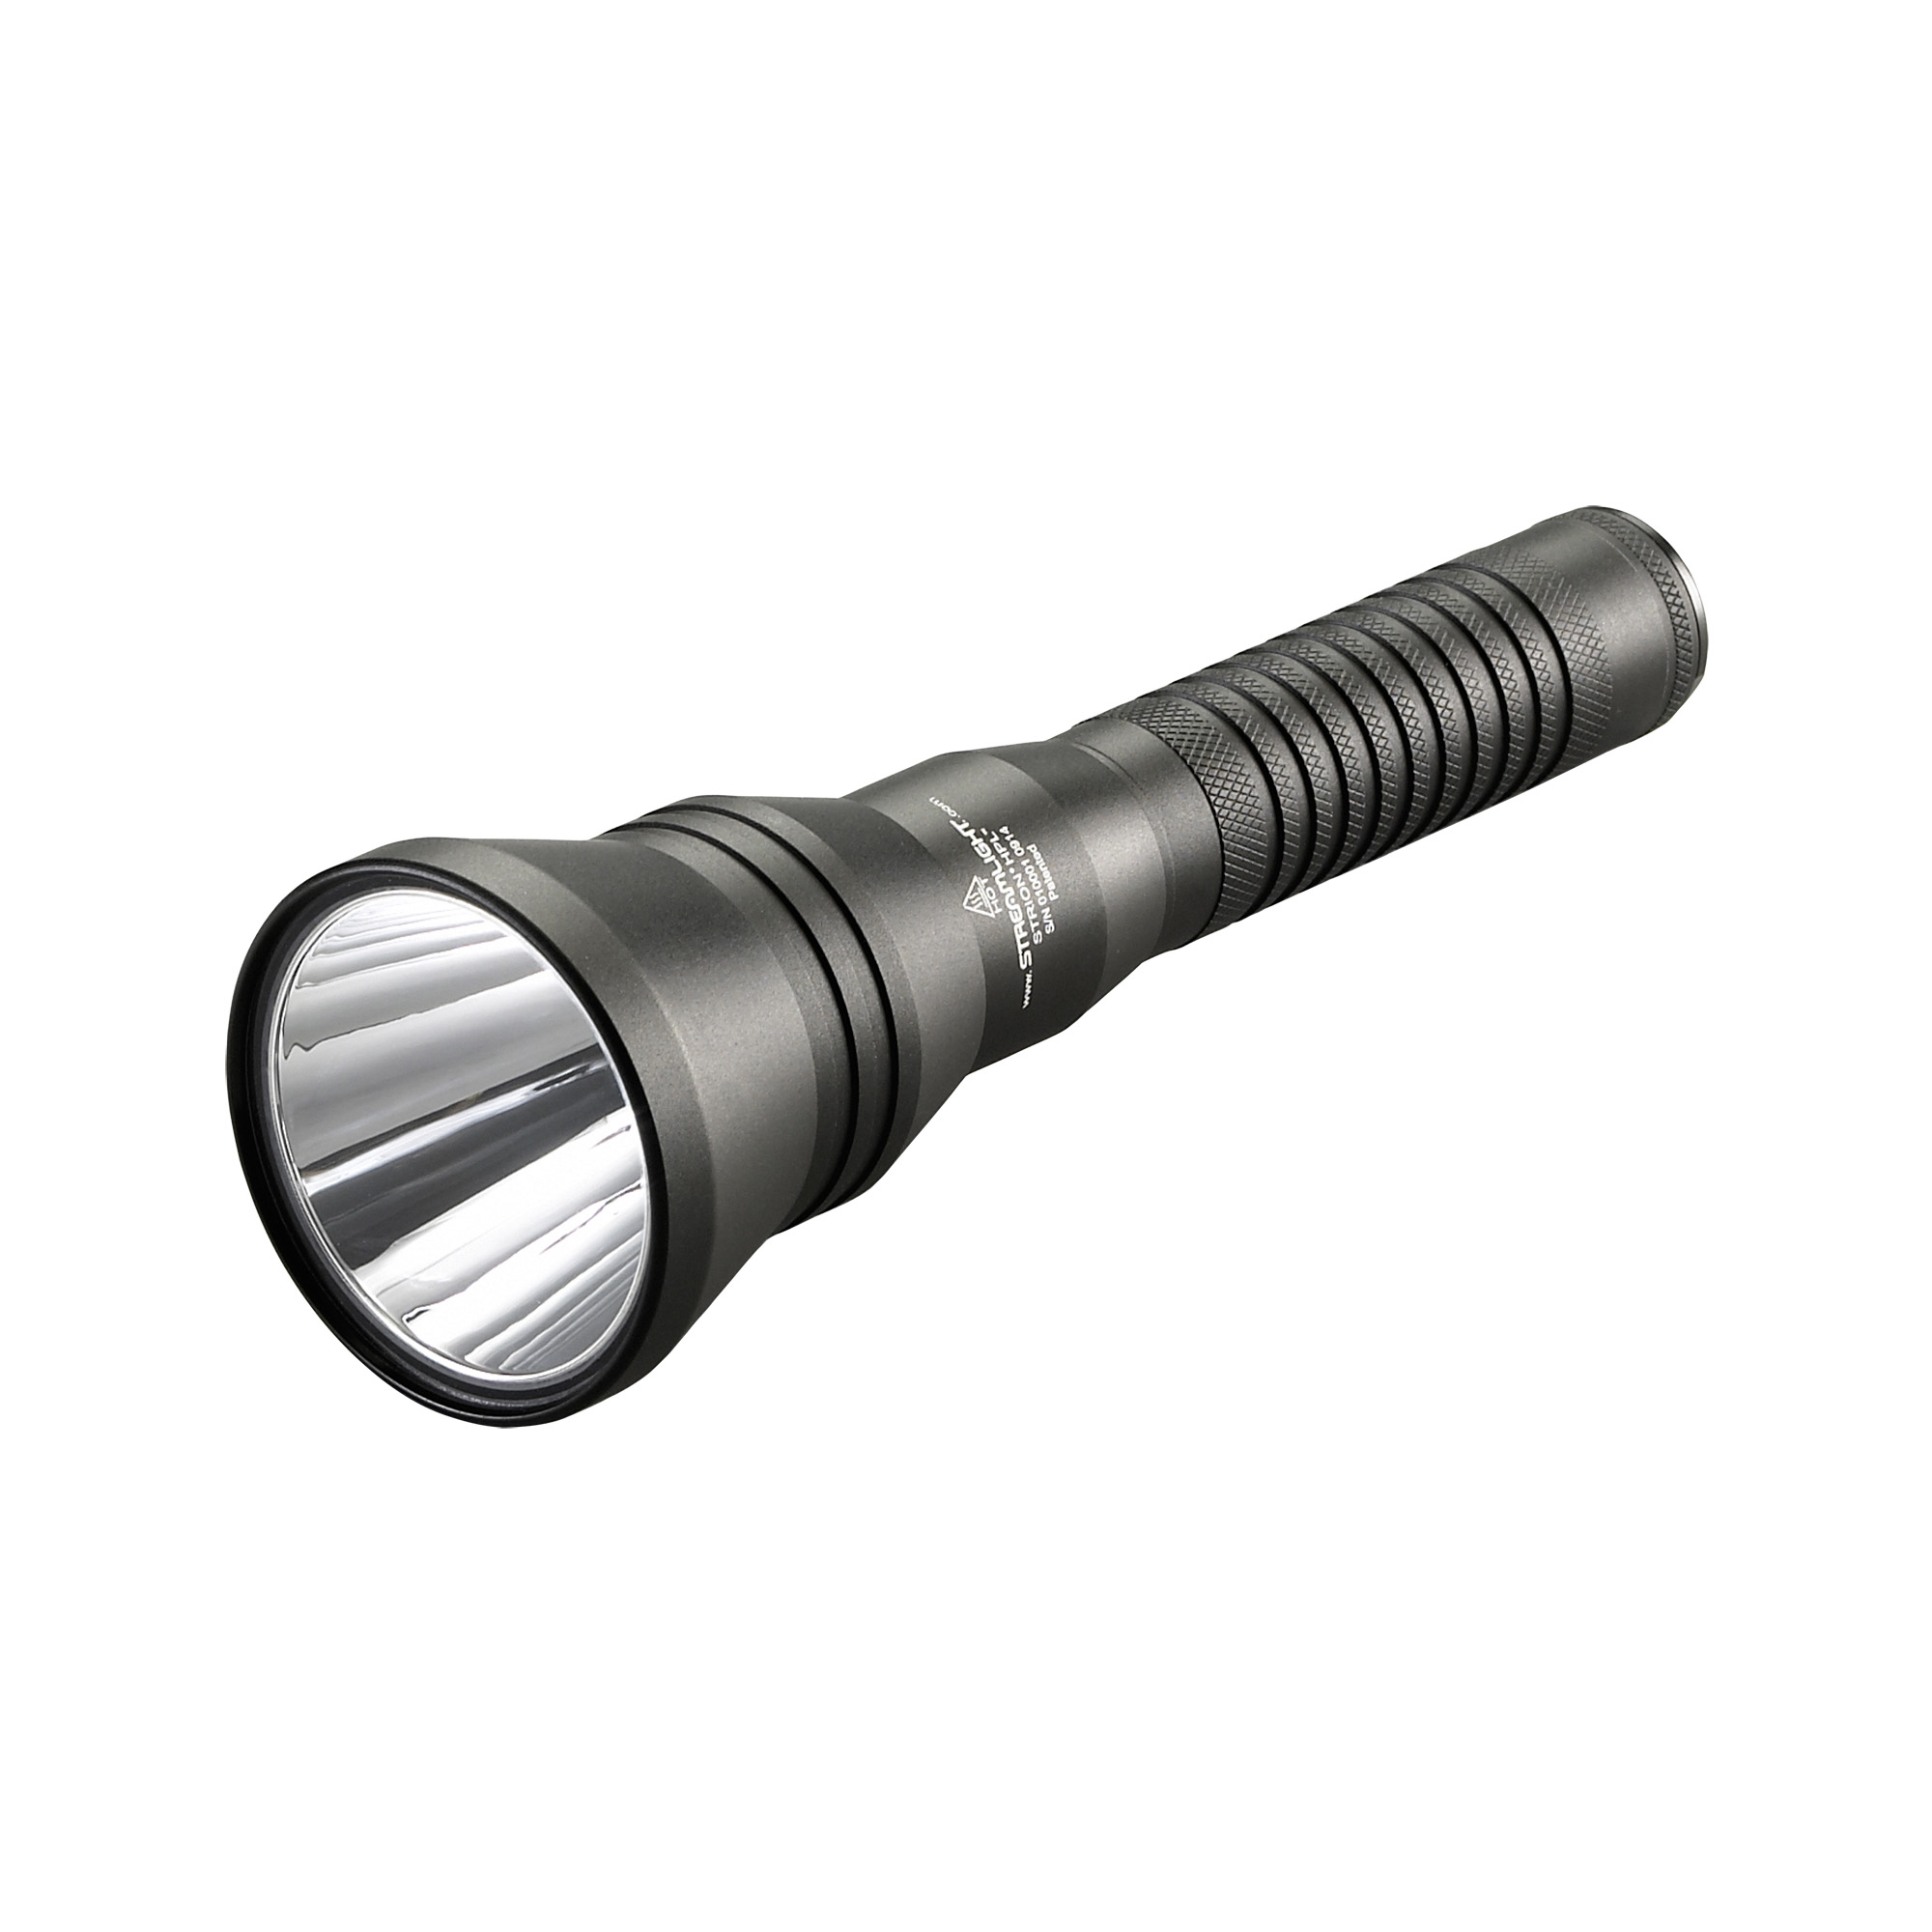 "The Strion HPL is a compact"" long-range"" hand-held flashlight that produces a wide"" 615 lumen beam pattern with brighter peripheral illumination and superior down-range performance - 400m beam distance."